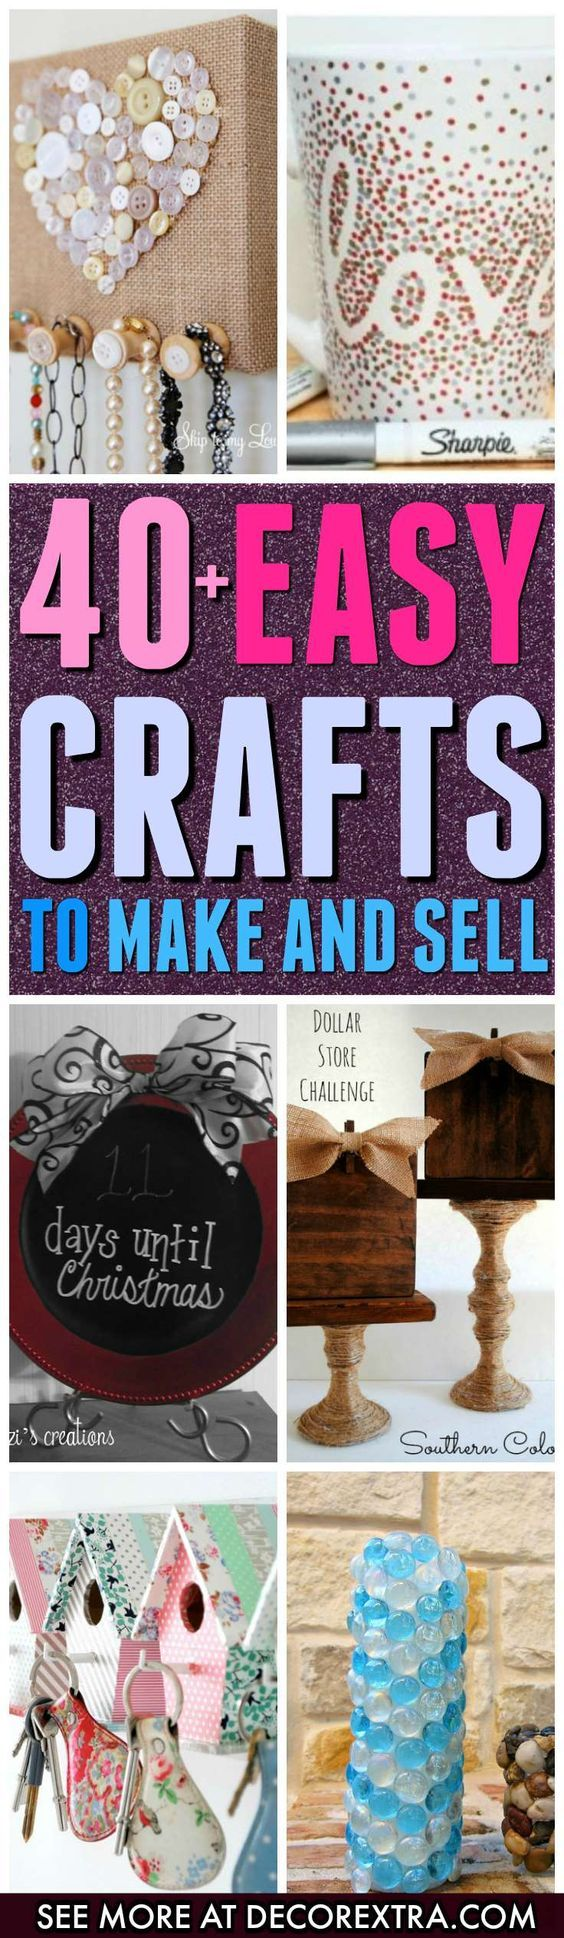 Crafts to make and sell you can make lots of different for Great crafts to make and sell